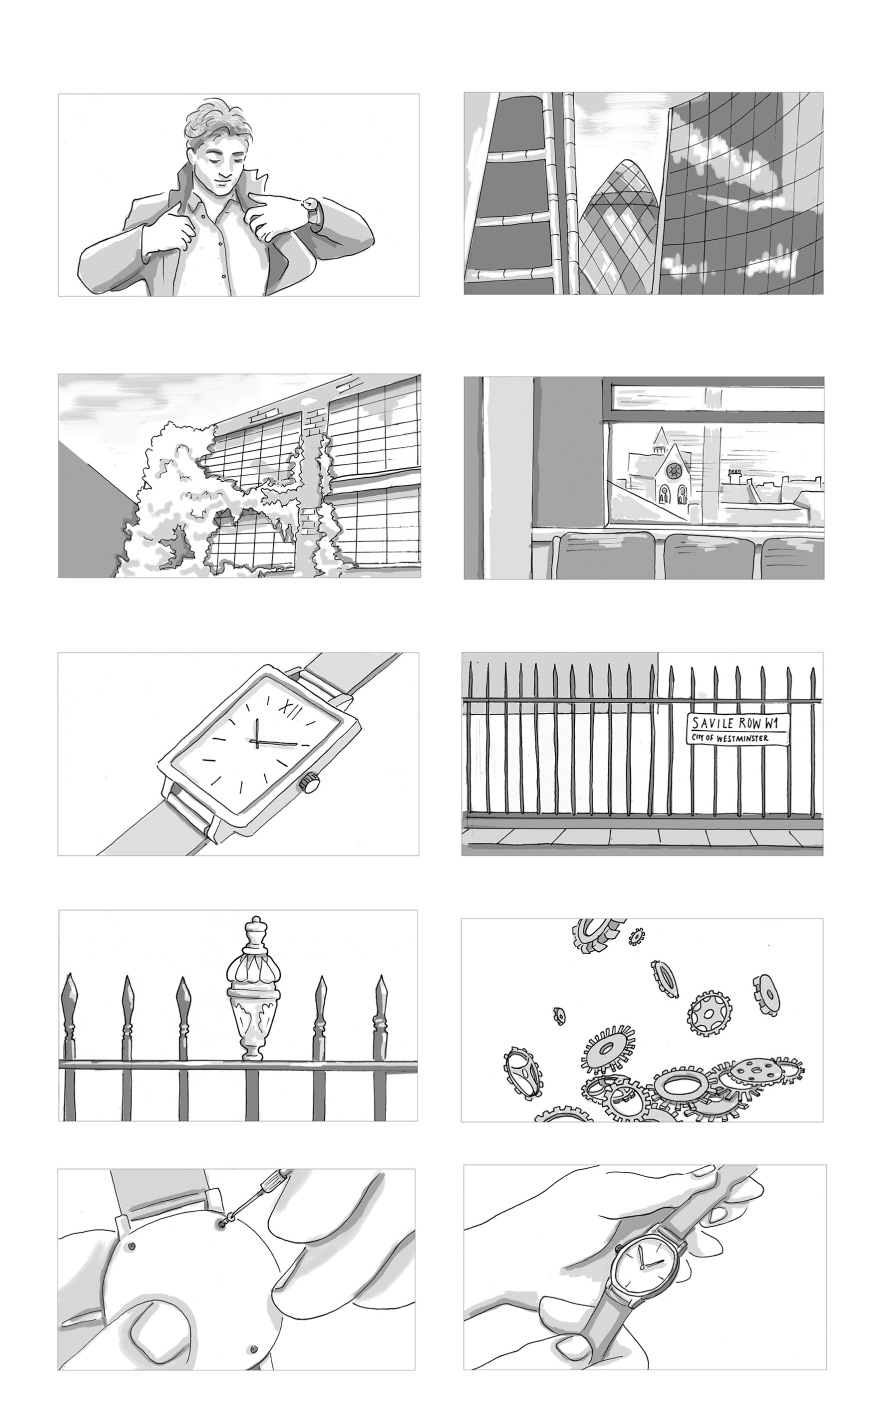 storyboard artist – Yuliya Pankratova Illustration